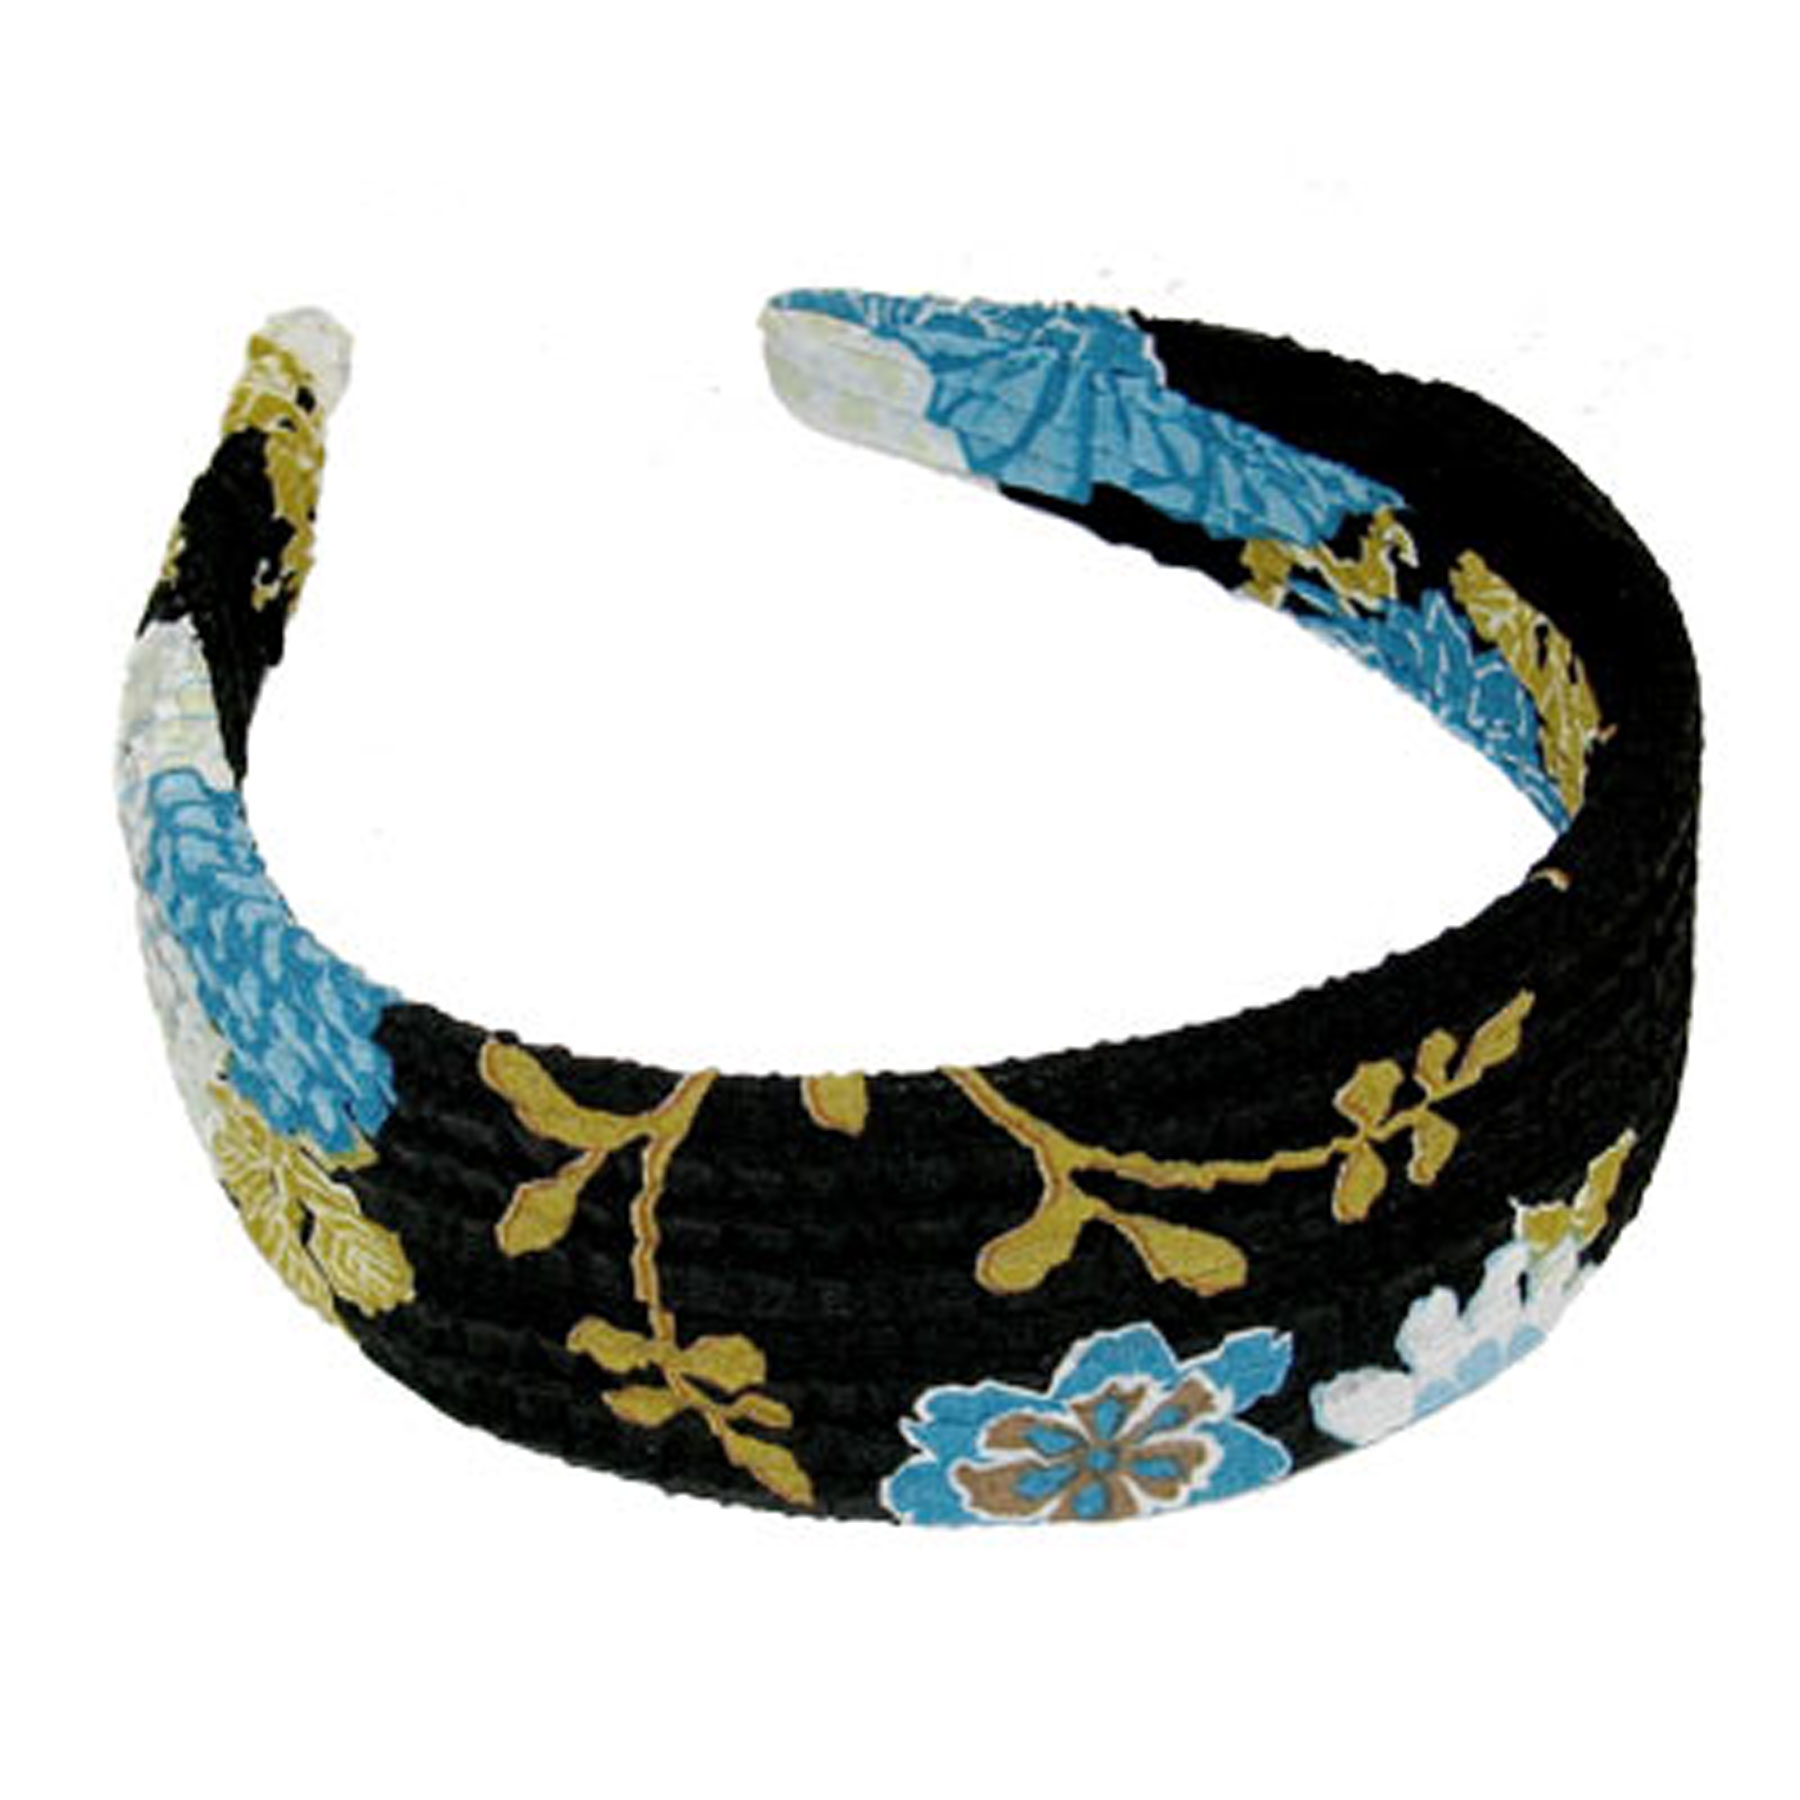 Georgette Headbands*